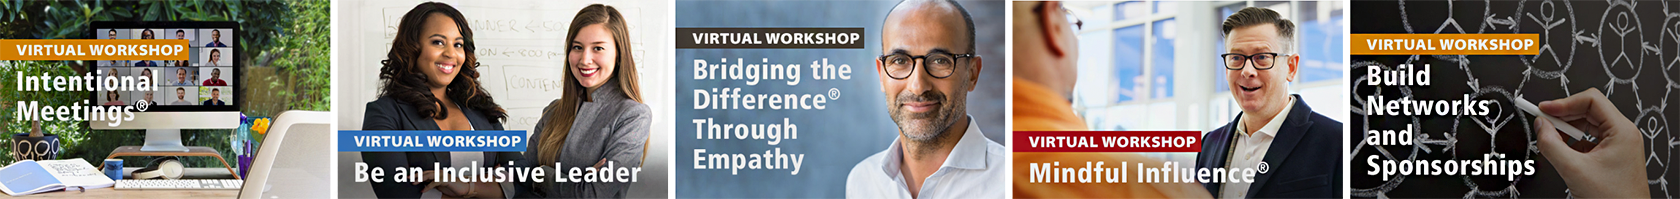 Leadership workshops offered by Bridging the Difference